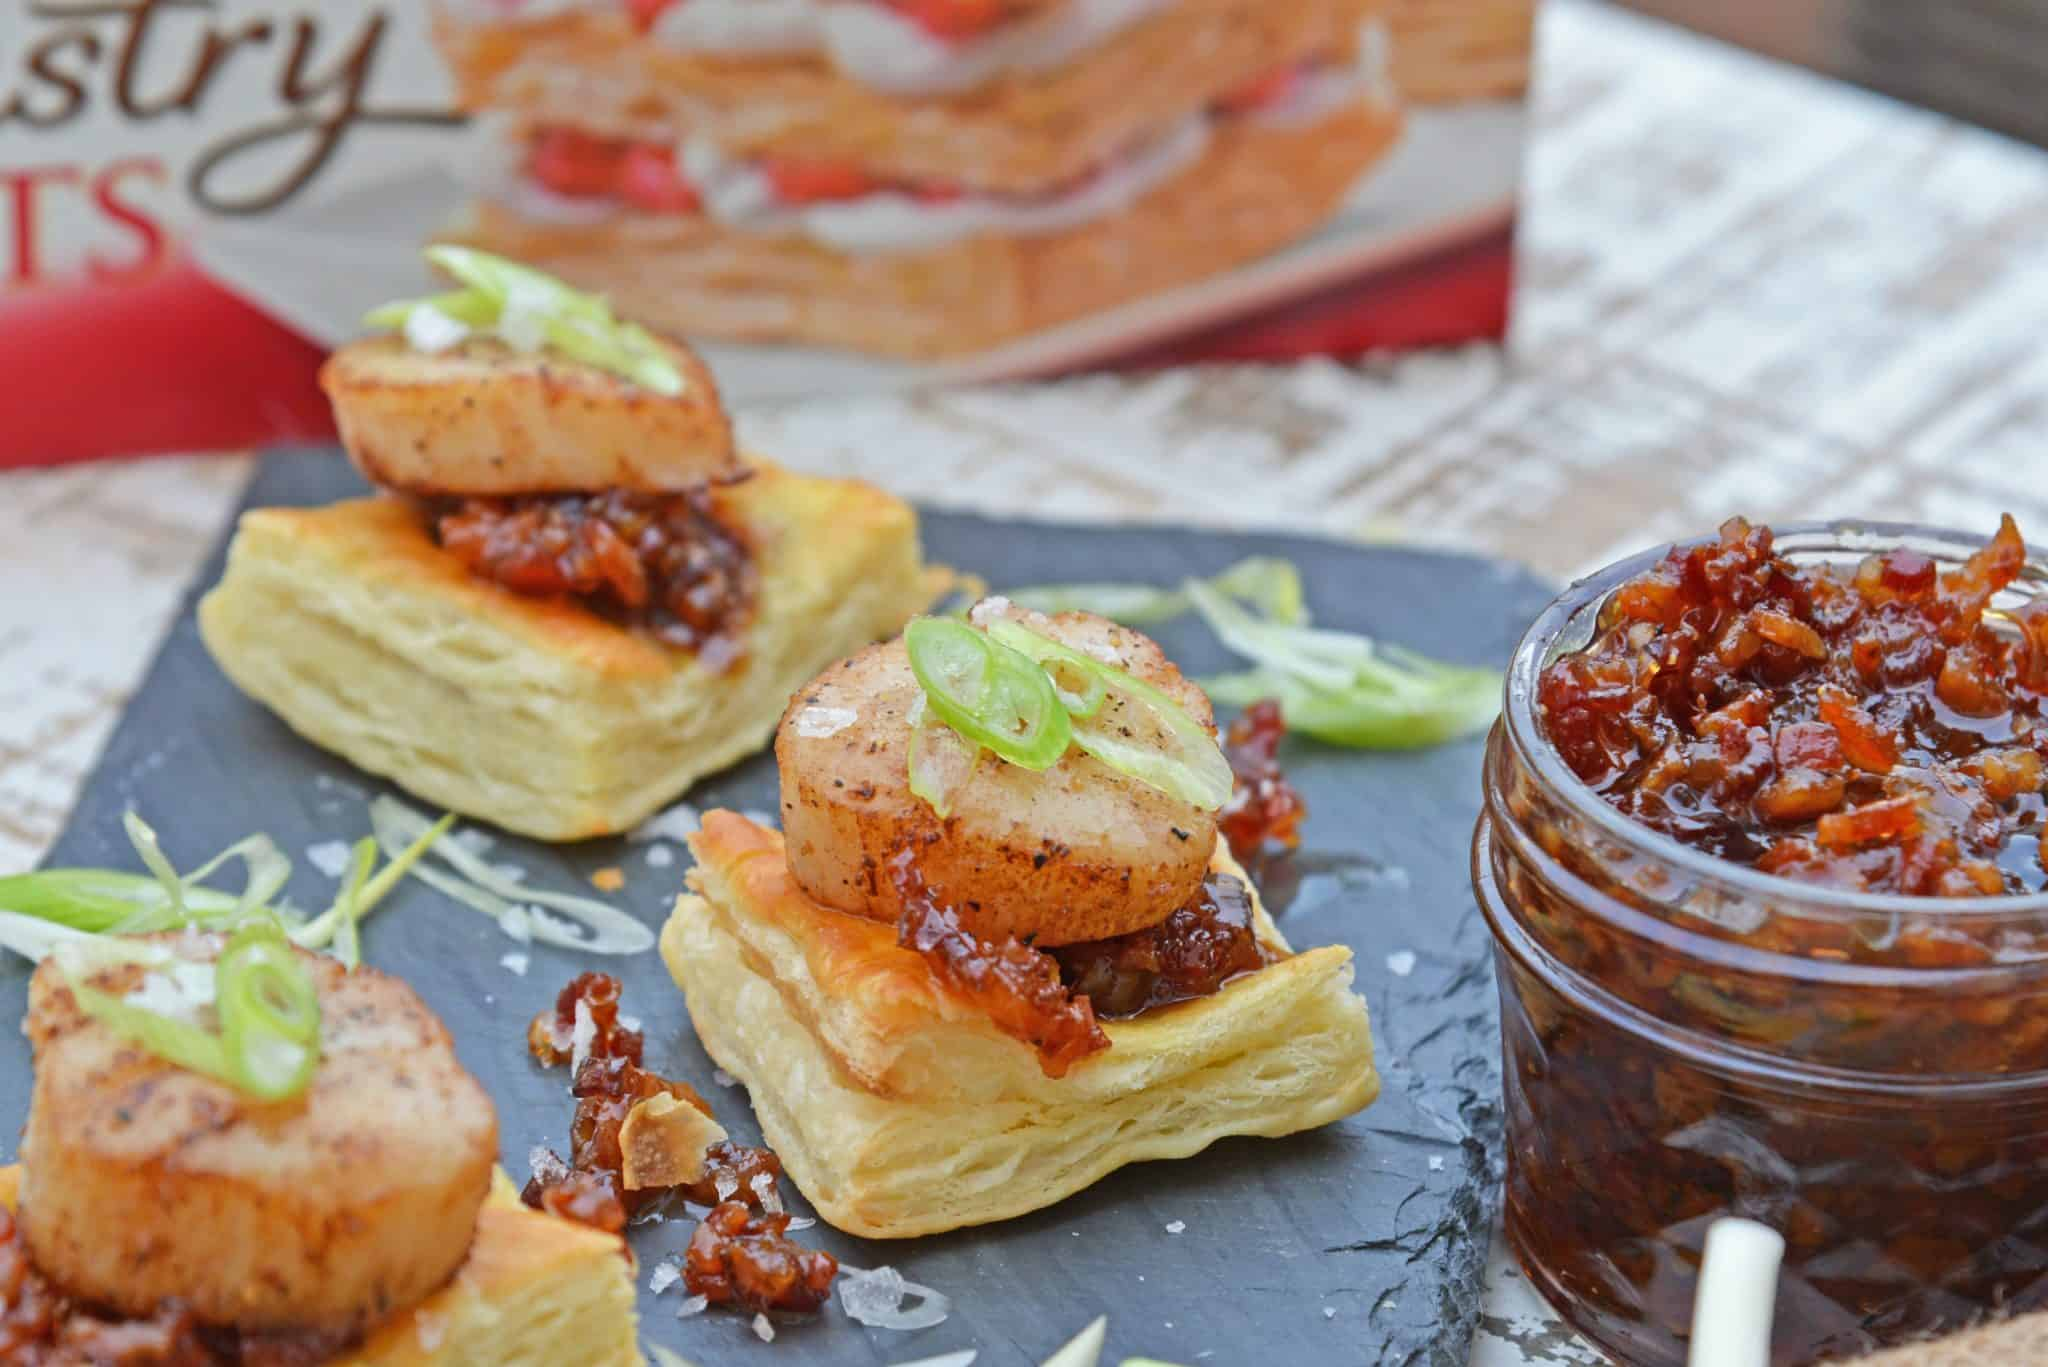 Bacon Jam Scallops are a play on classic bacon wrapped scallops, only using sweet and salty bacon jam with scallions and flaky puff pastry! #scallopappetizers #baconjam www.savoryexperiments.com